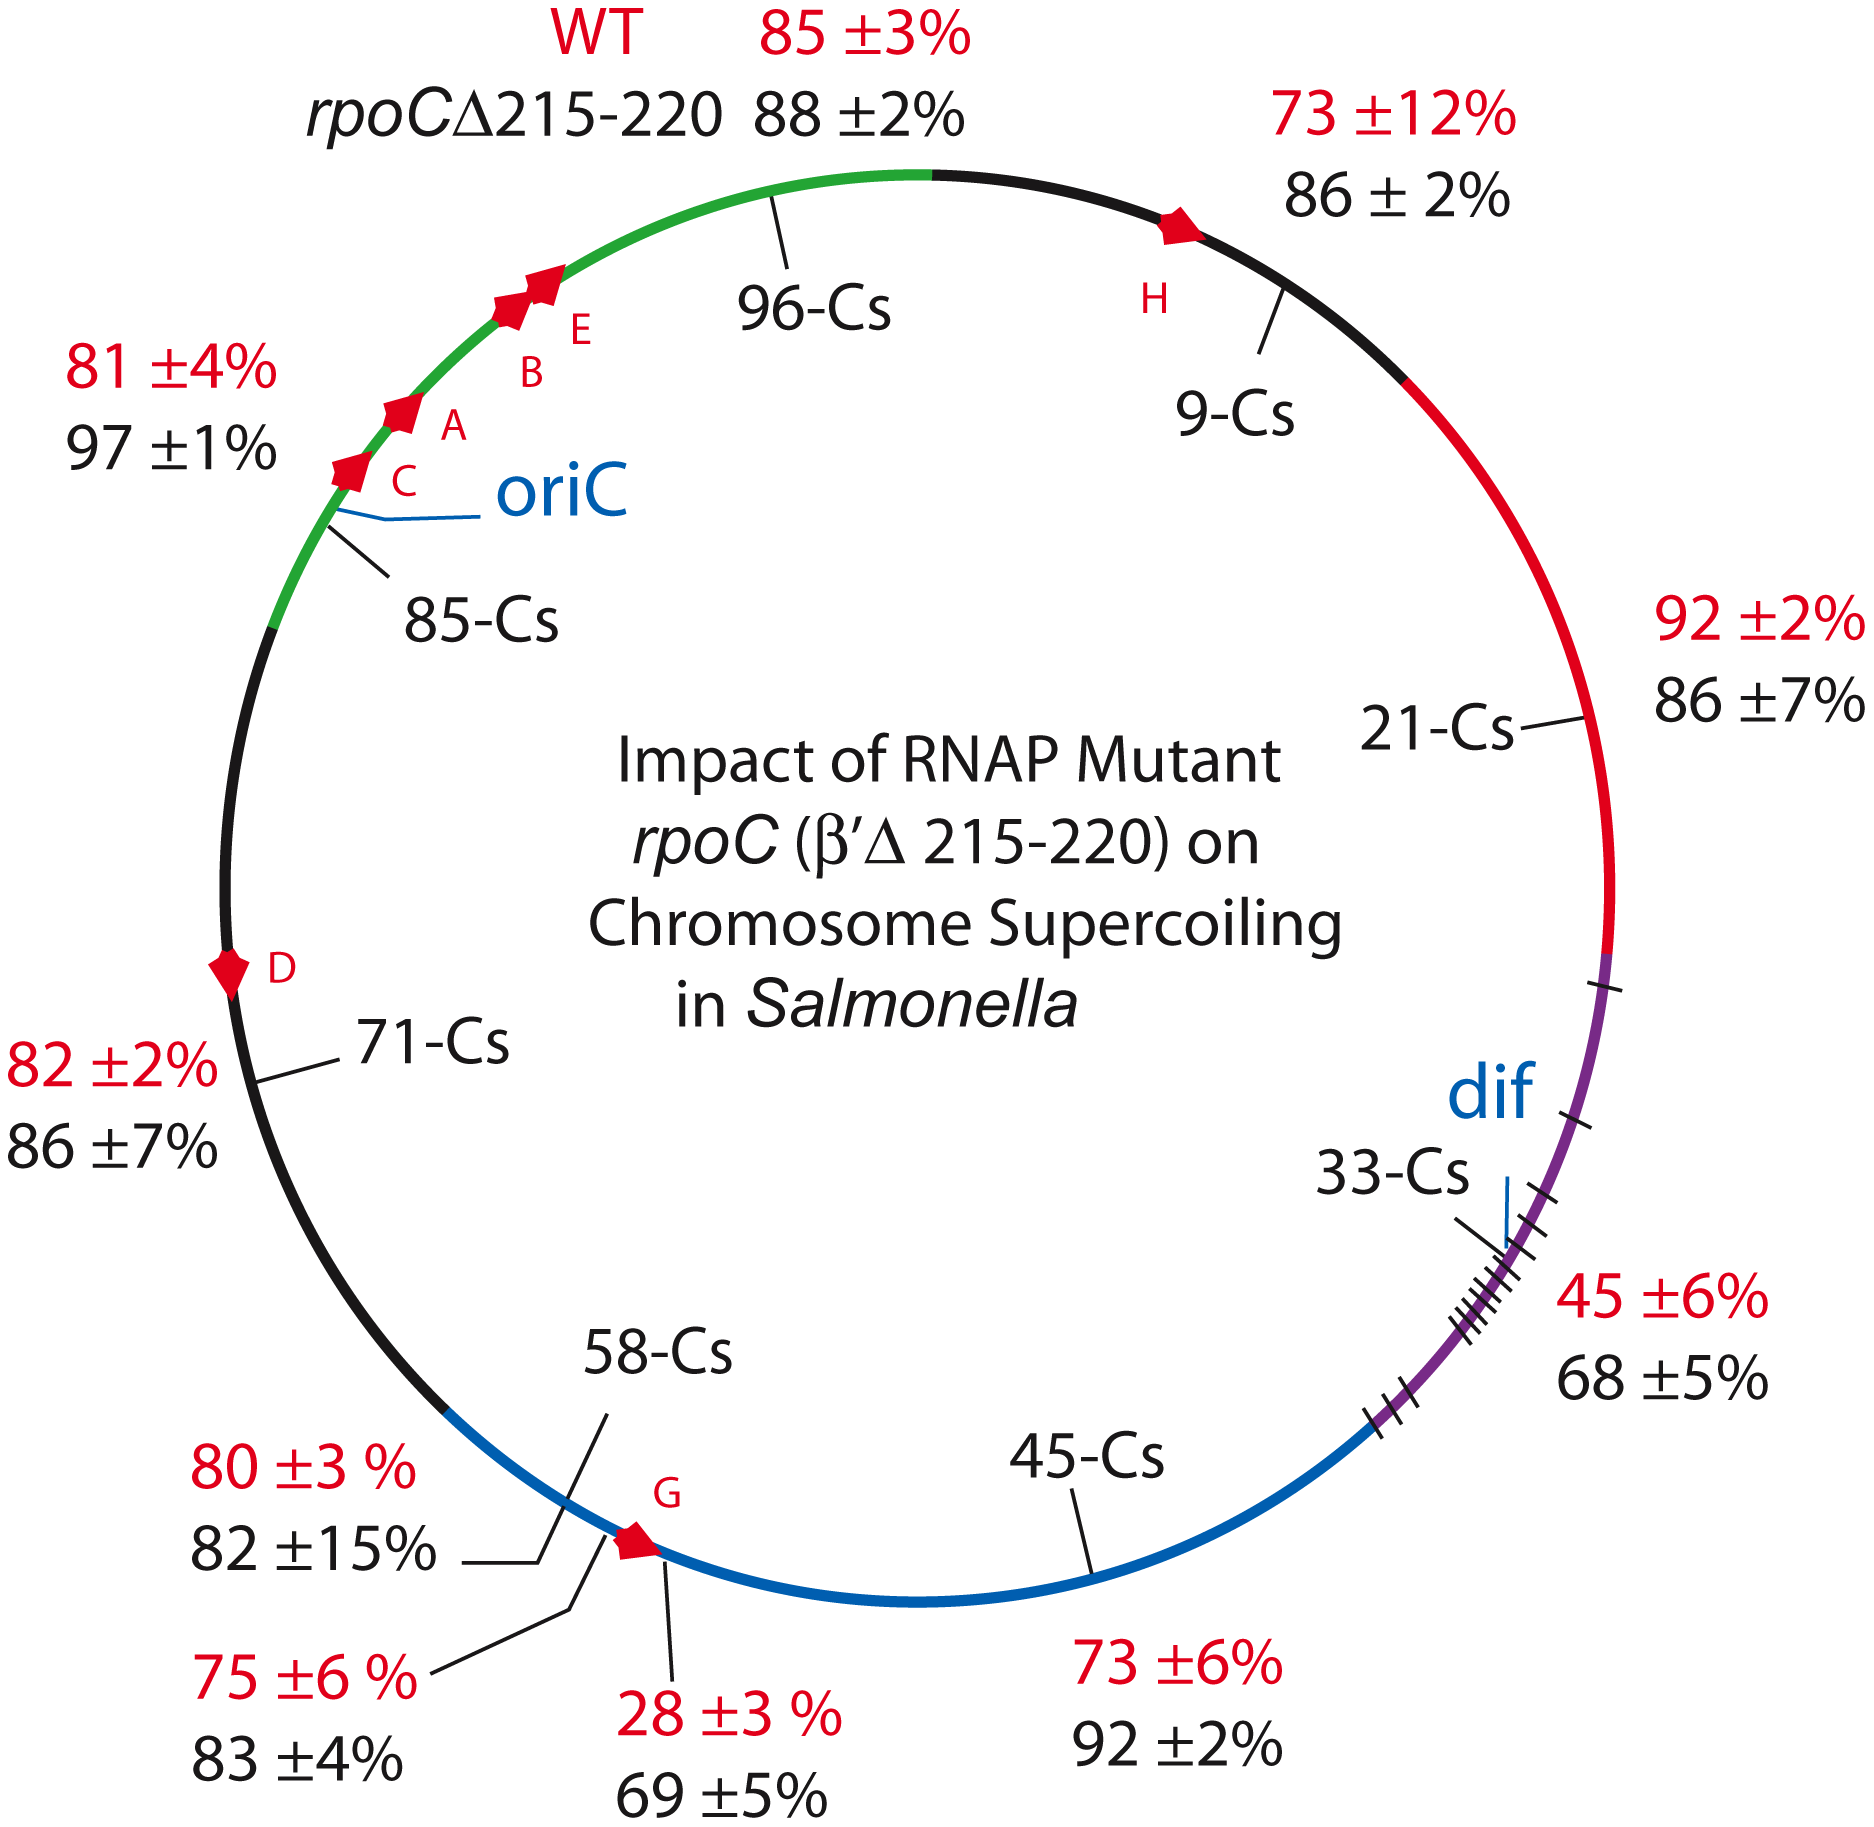 An RpoC mutant that slows transcription and mimics the stringent response in the absence of ppGpp causes global increases in resolution efficiency in the <i>Salmonella</i> chromosome.